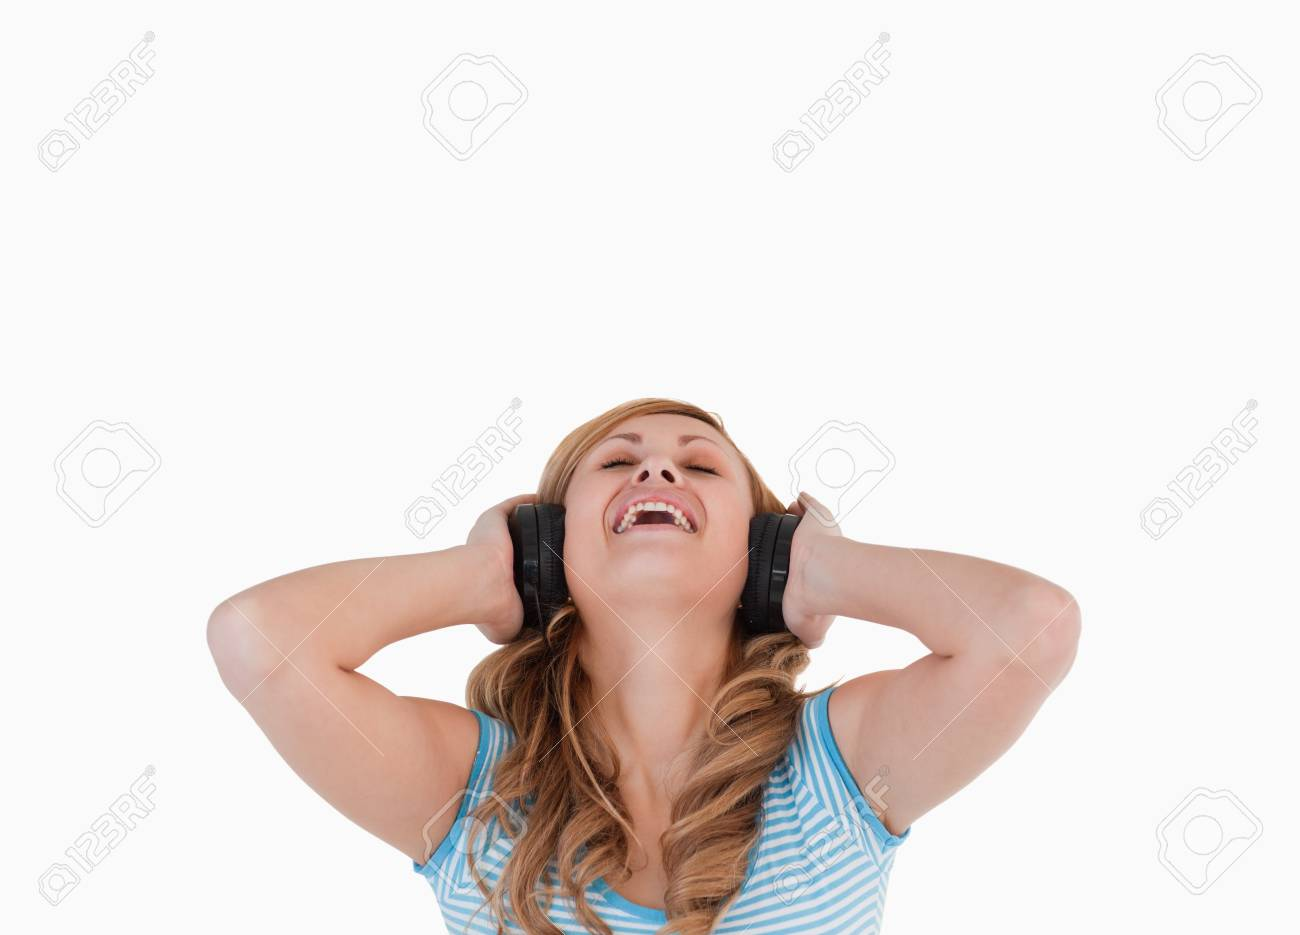 Attractive blond-haired woman happy while listening to music standing on a white background Stock Photo - 10191708